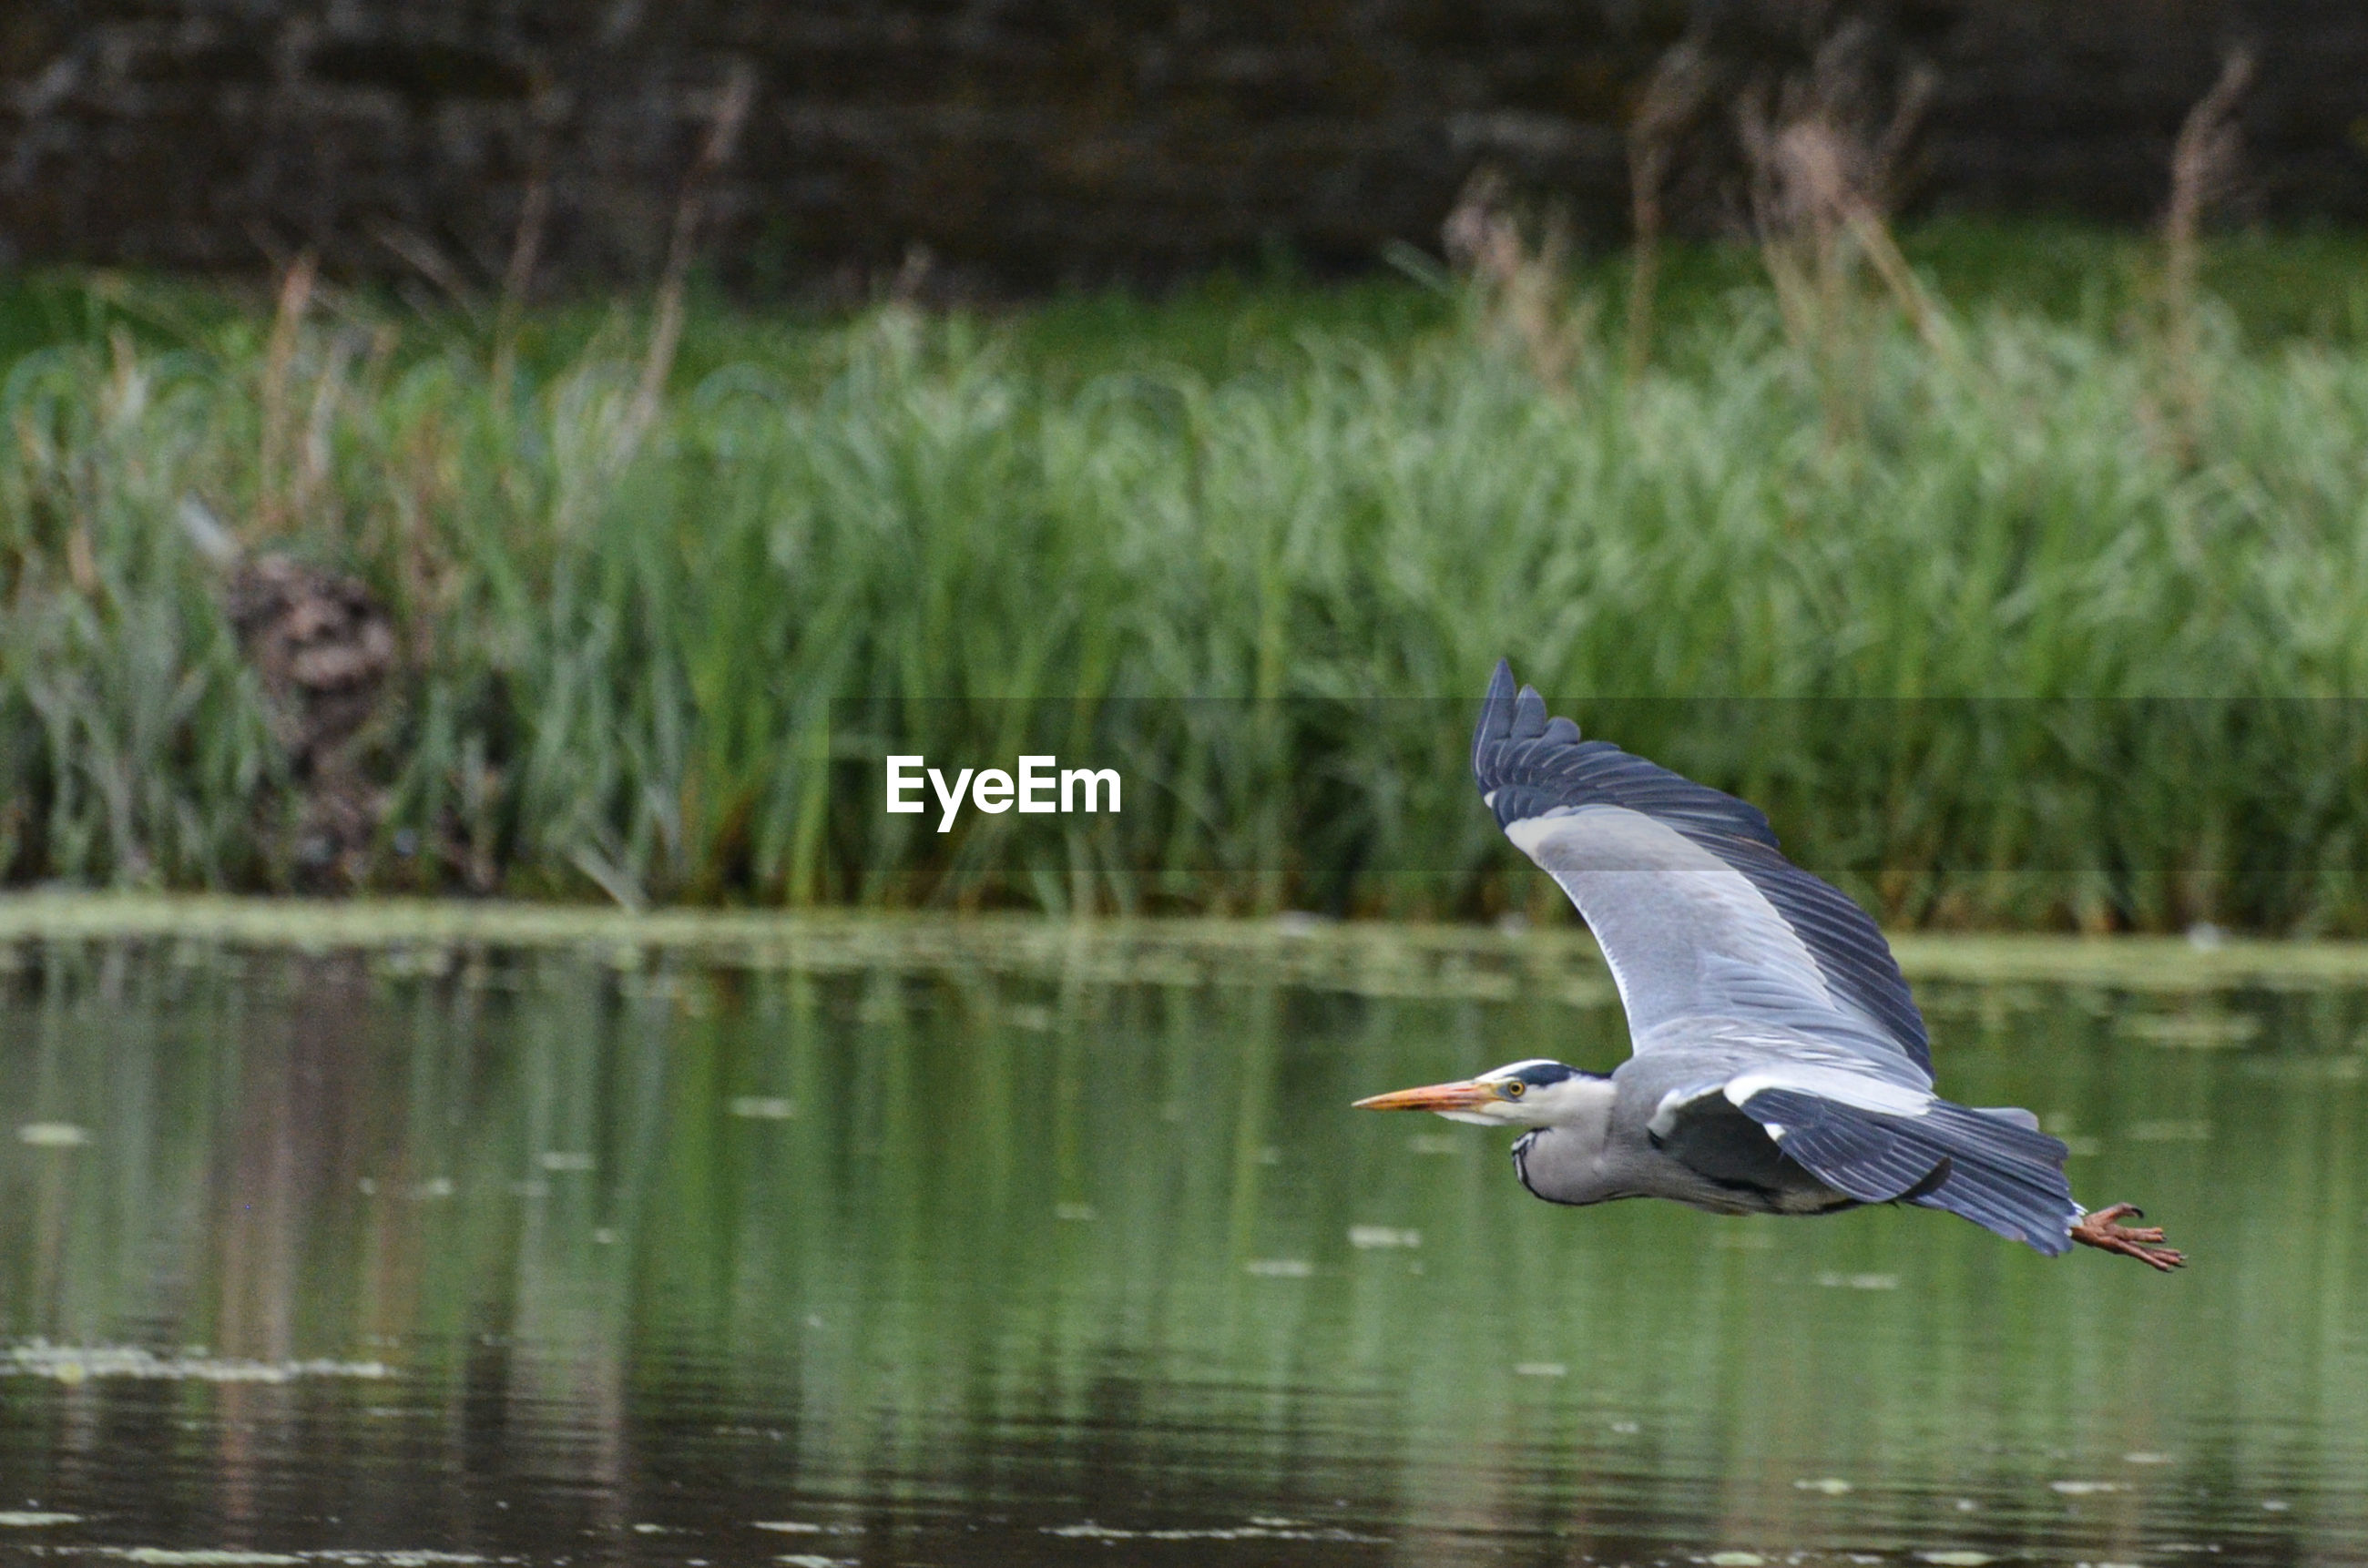 View of a heron flying over lake